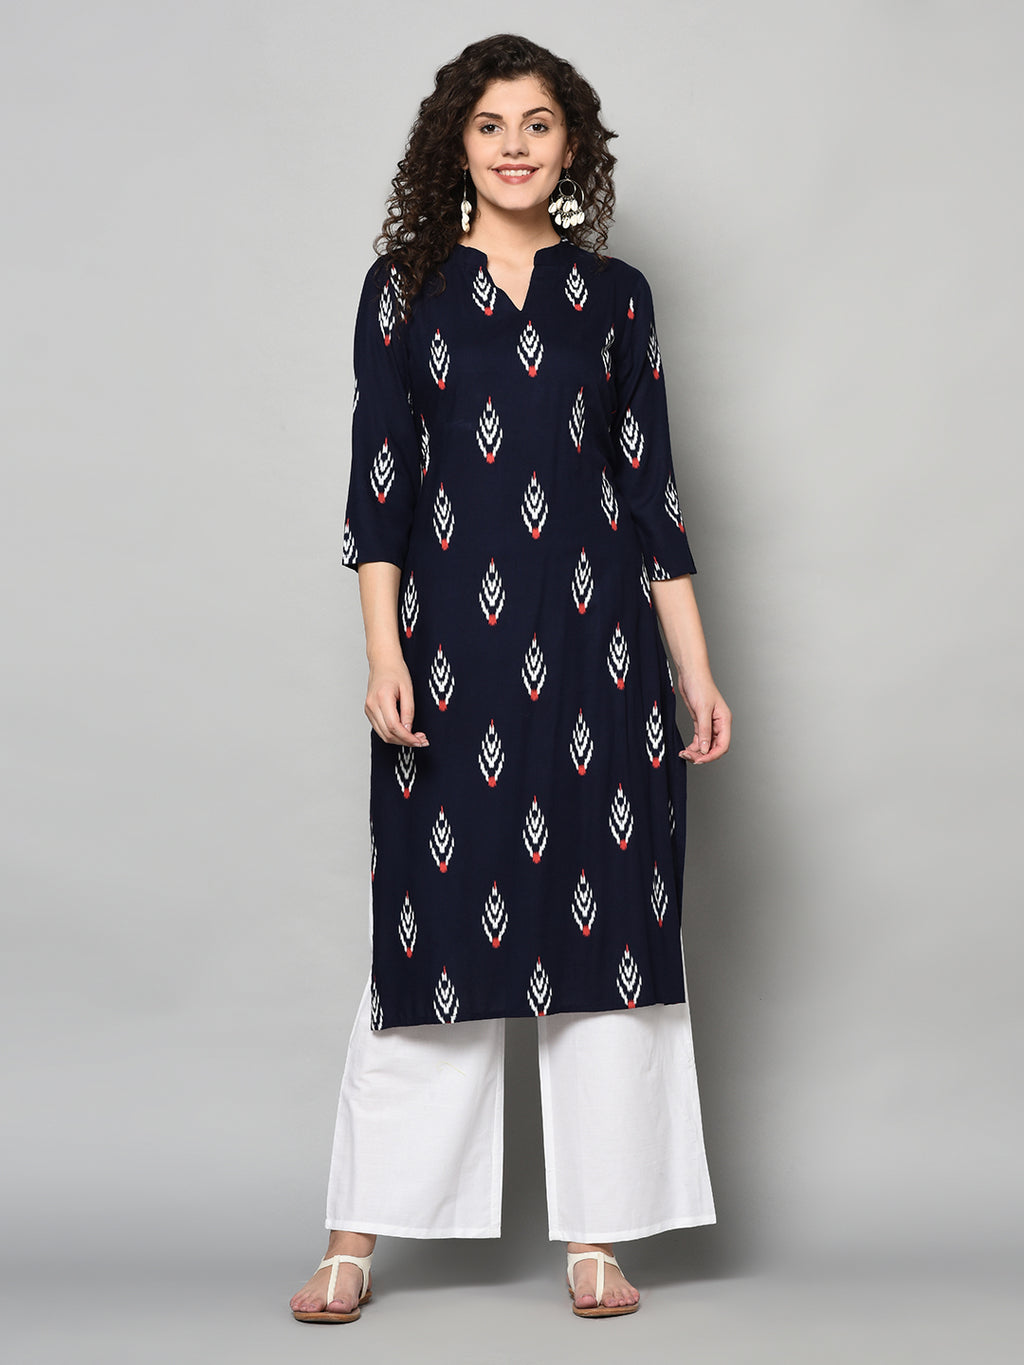 ZNX Women Navy Blue & Off White Printed Straight Kurta with Palazzo Set (Fully Stitched)